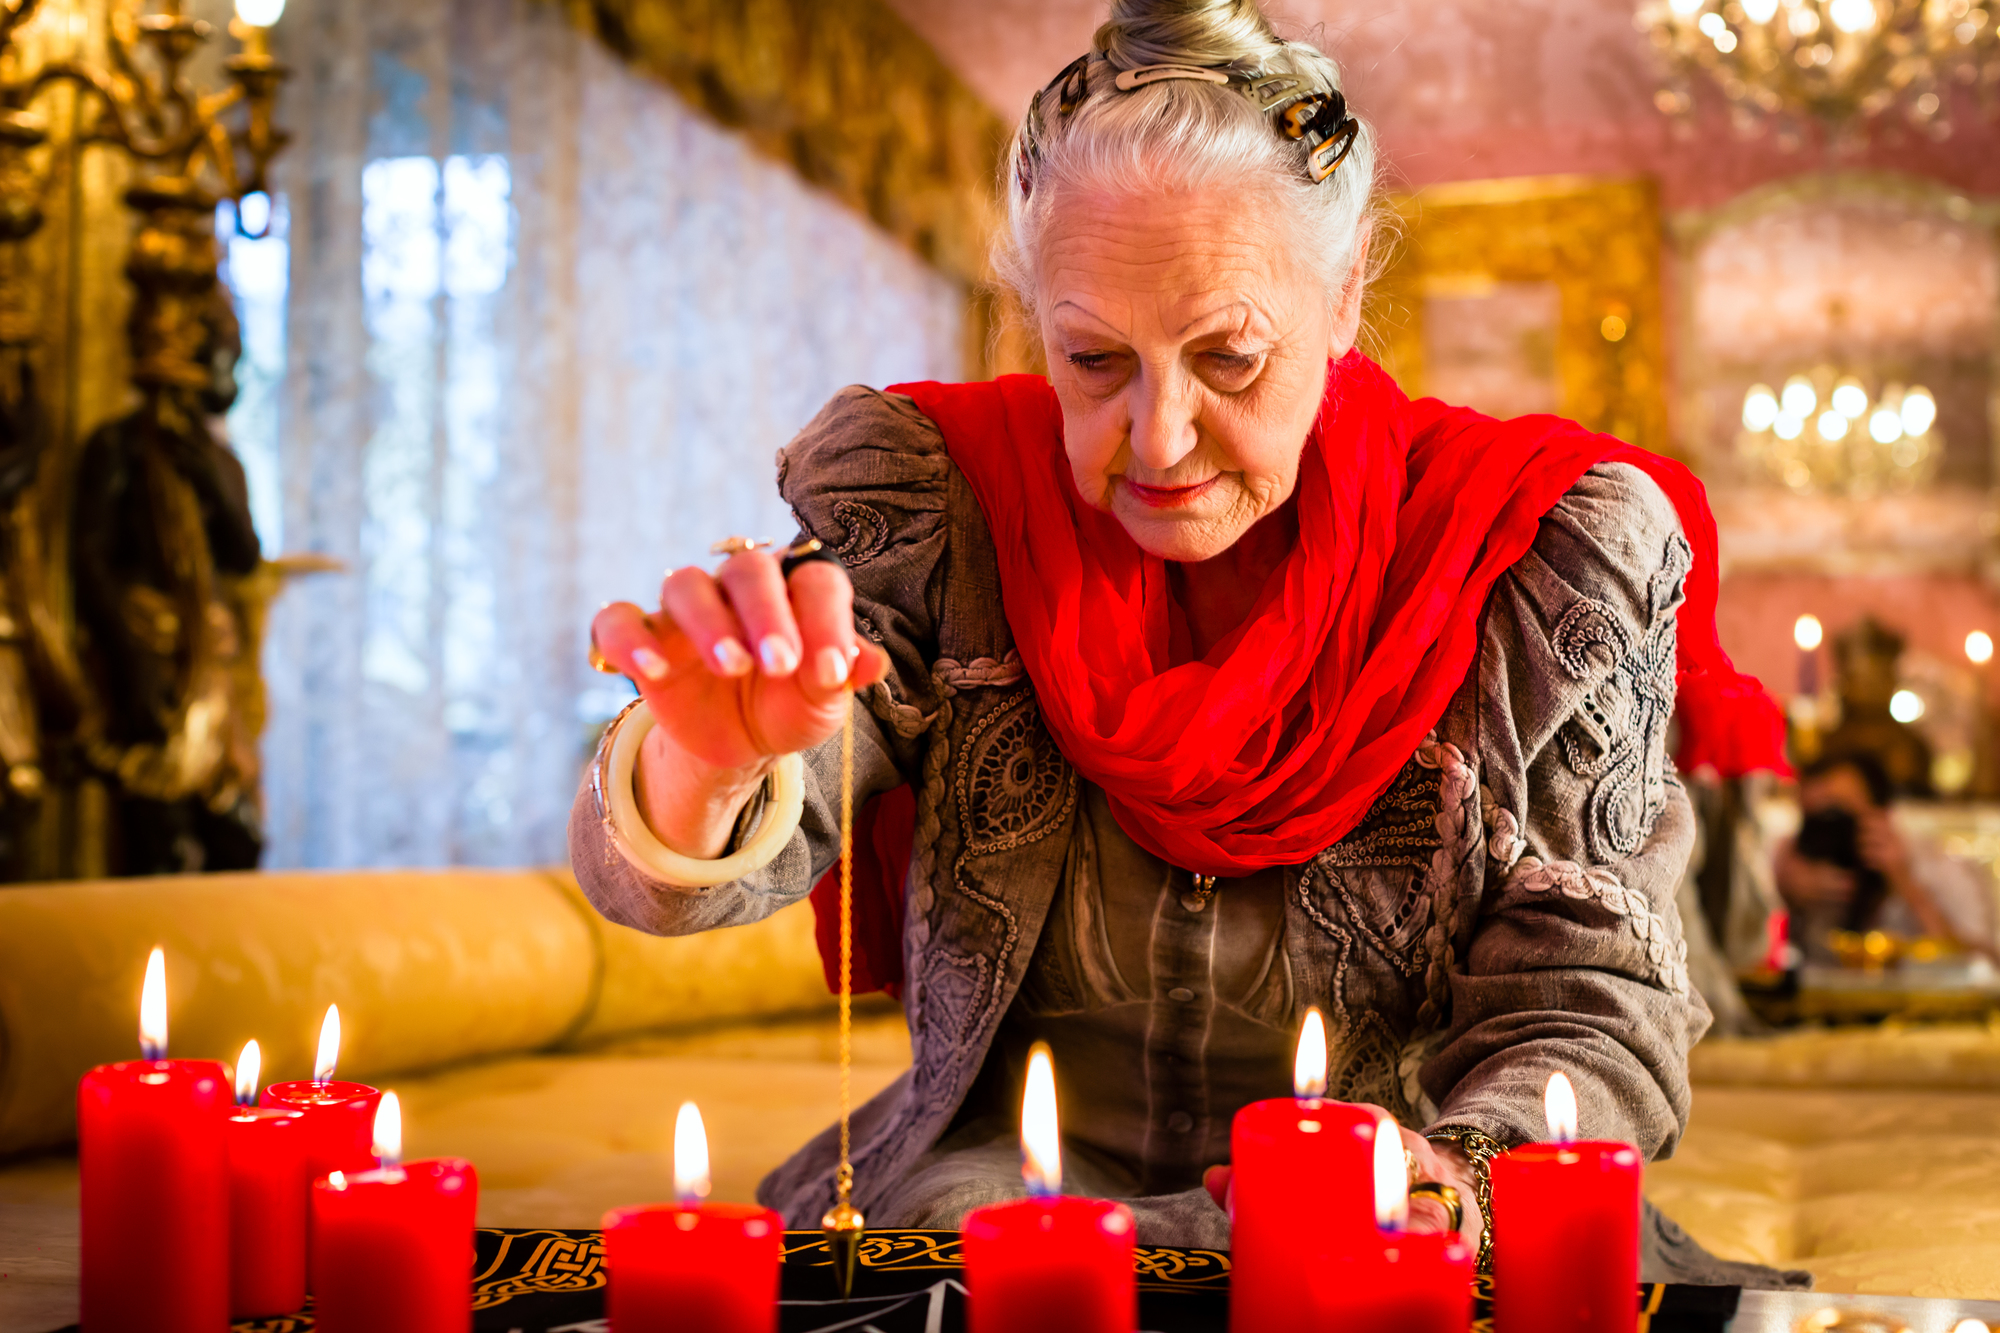 Female Fortuneteller or esoteric Oracle, sees in the future by dowsing her pendulum during a Seance to interpret them and to answer questions